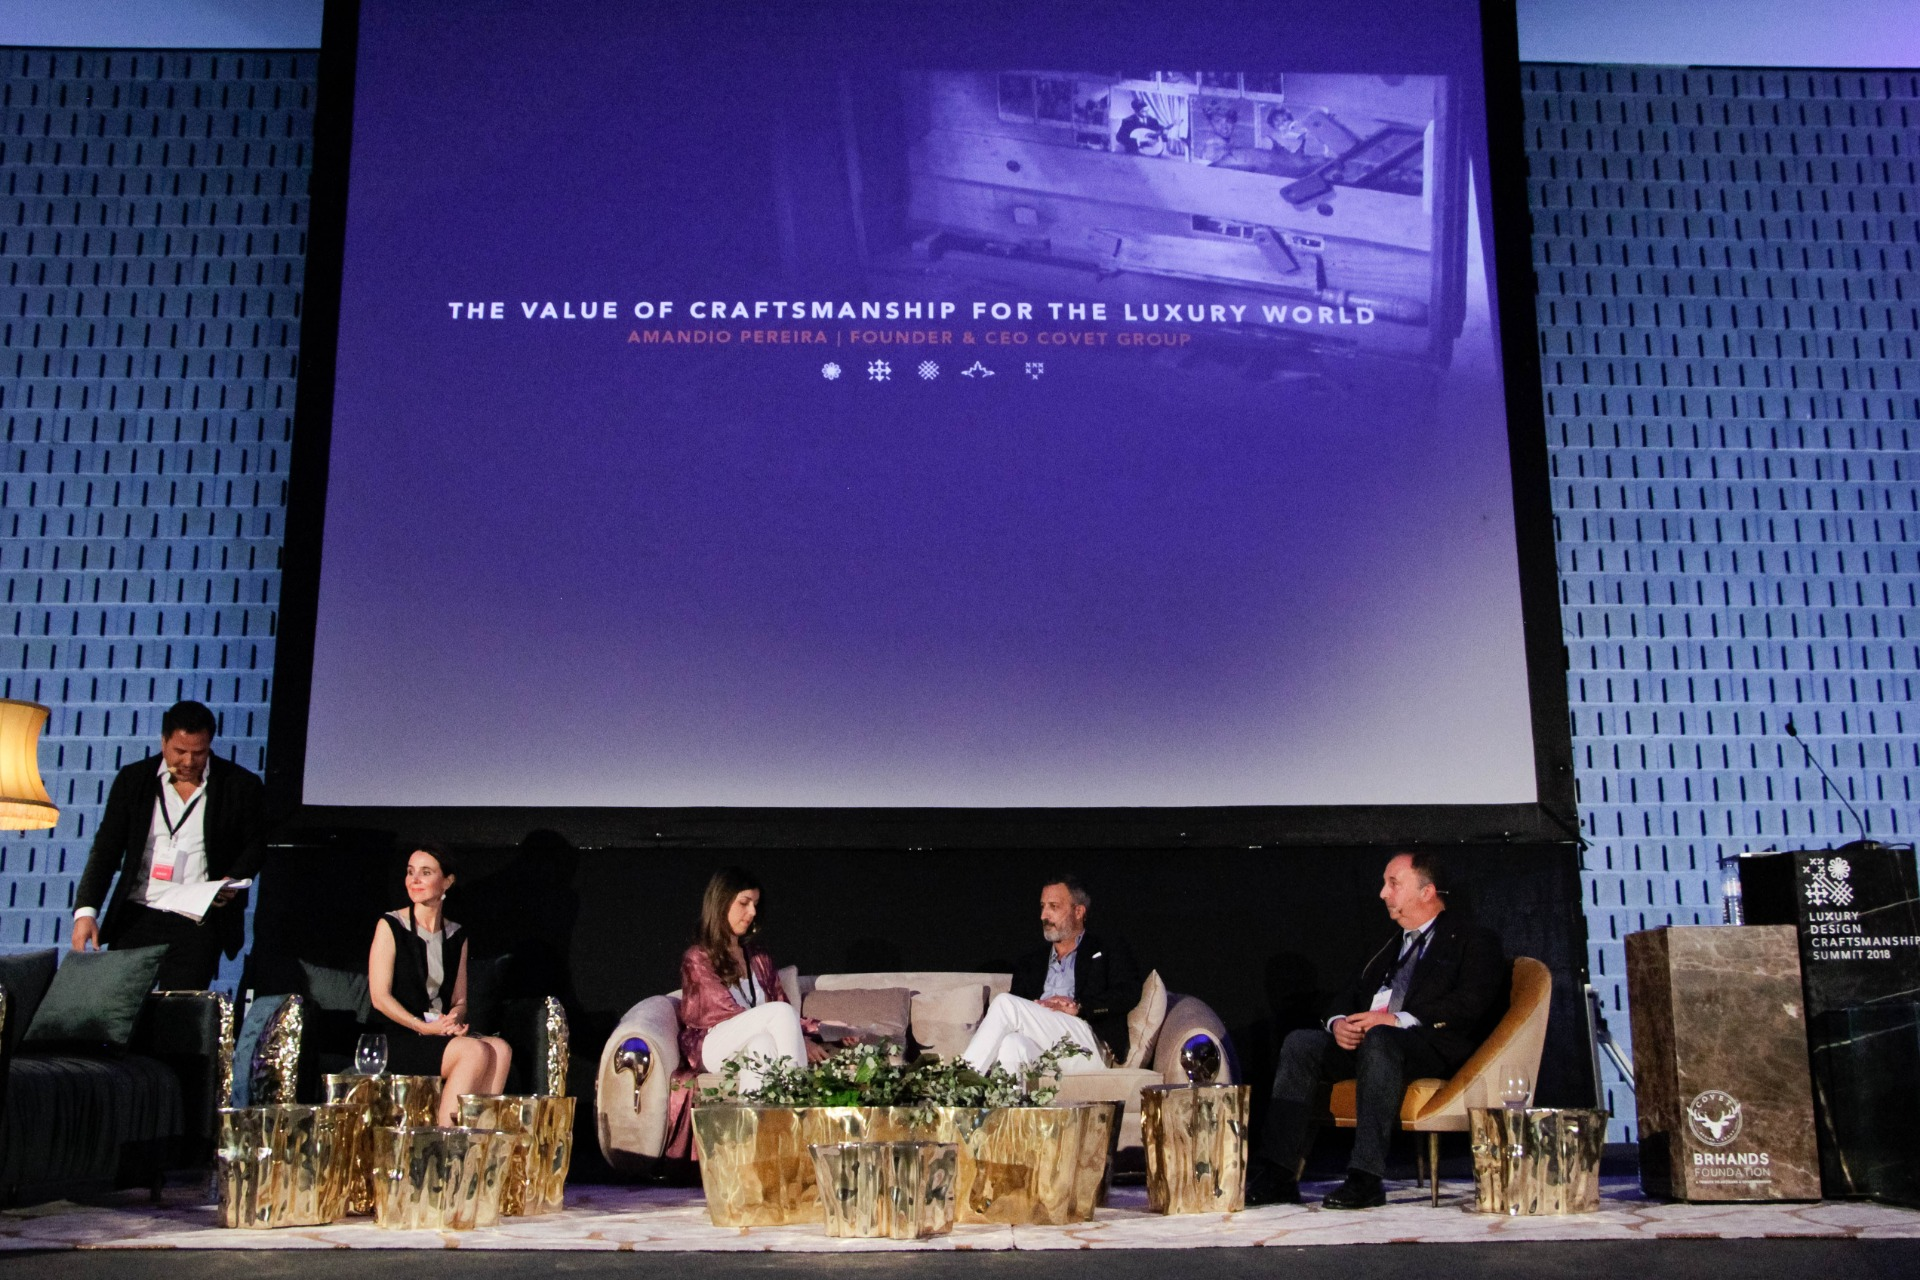 Everything That Happened in The Luxury Design & Craftsmanship Summit luxury design craftsmanship summit Everything That Happened in The Luxury Design & Craftsmanship Summit Celebrating Craftsmanship The Luxury DesignCraftsmanship Summit 2019 5